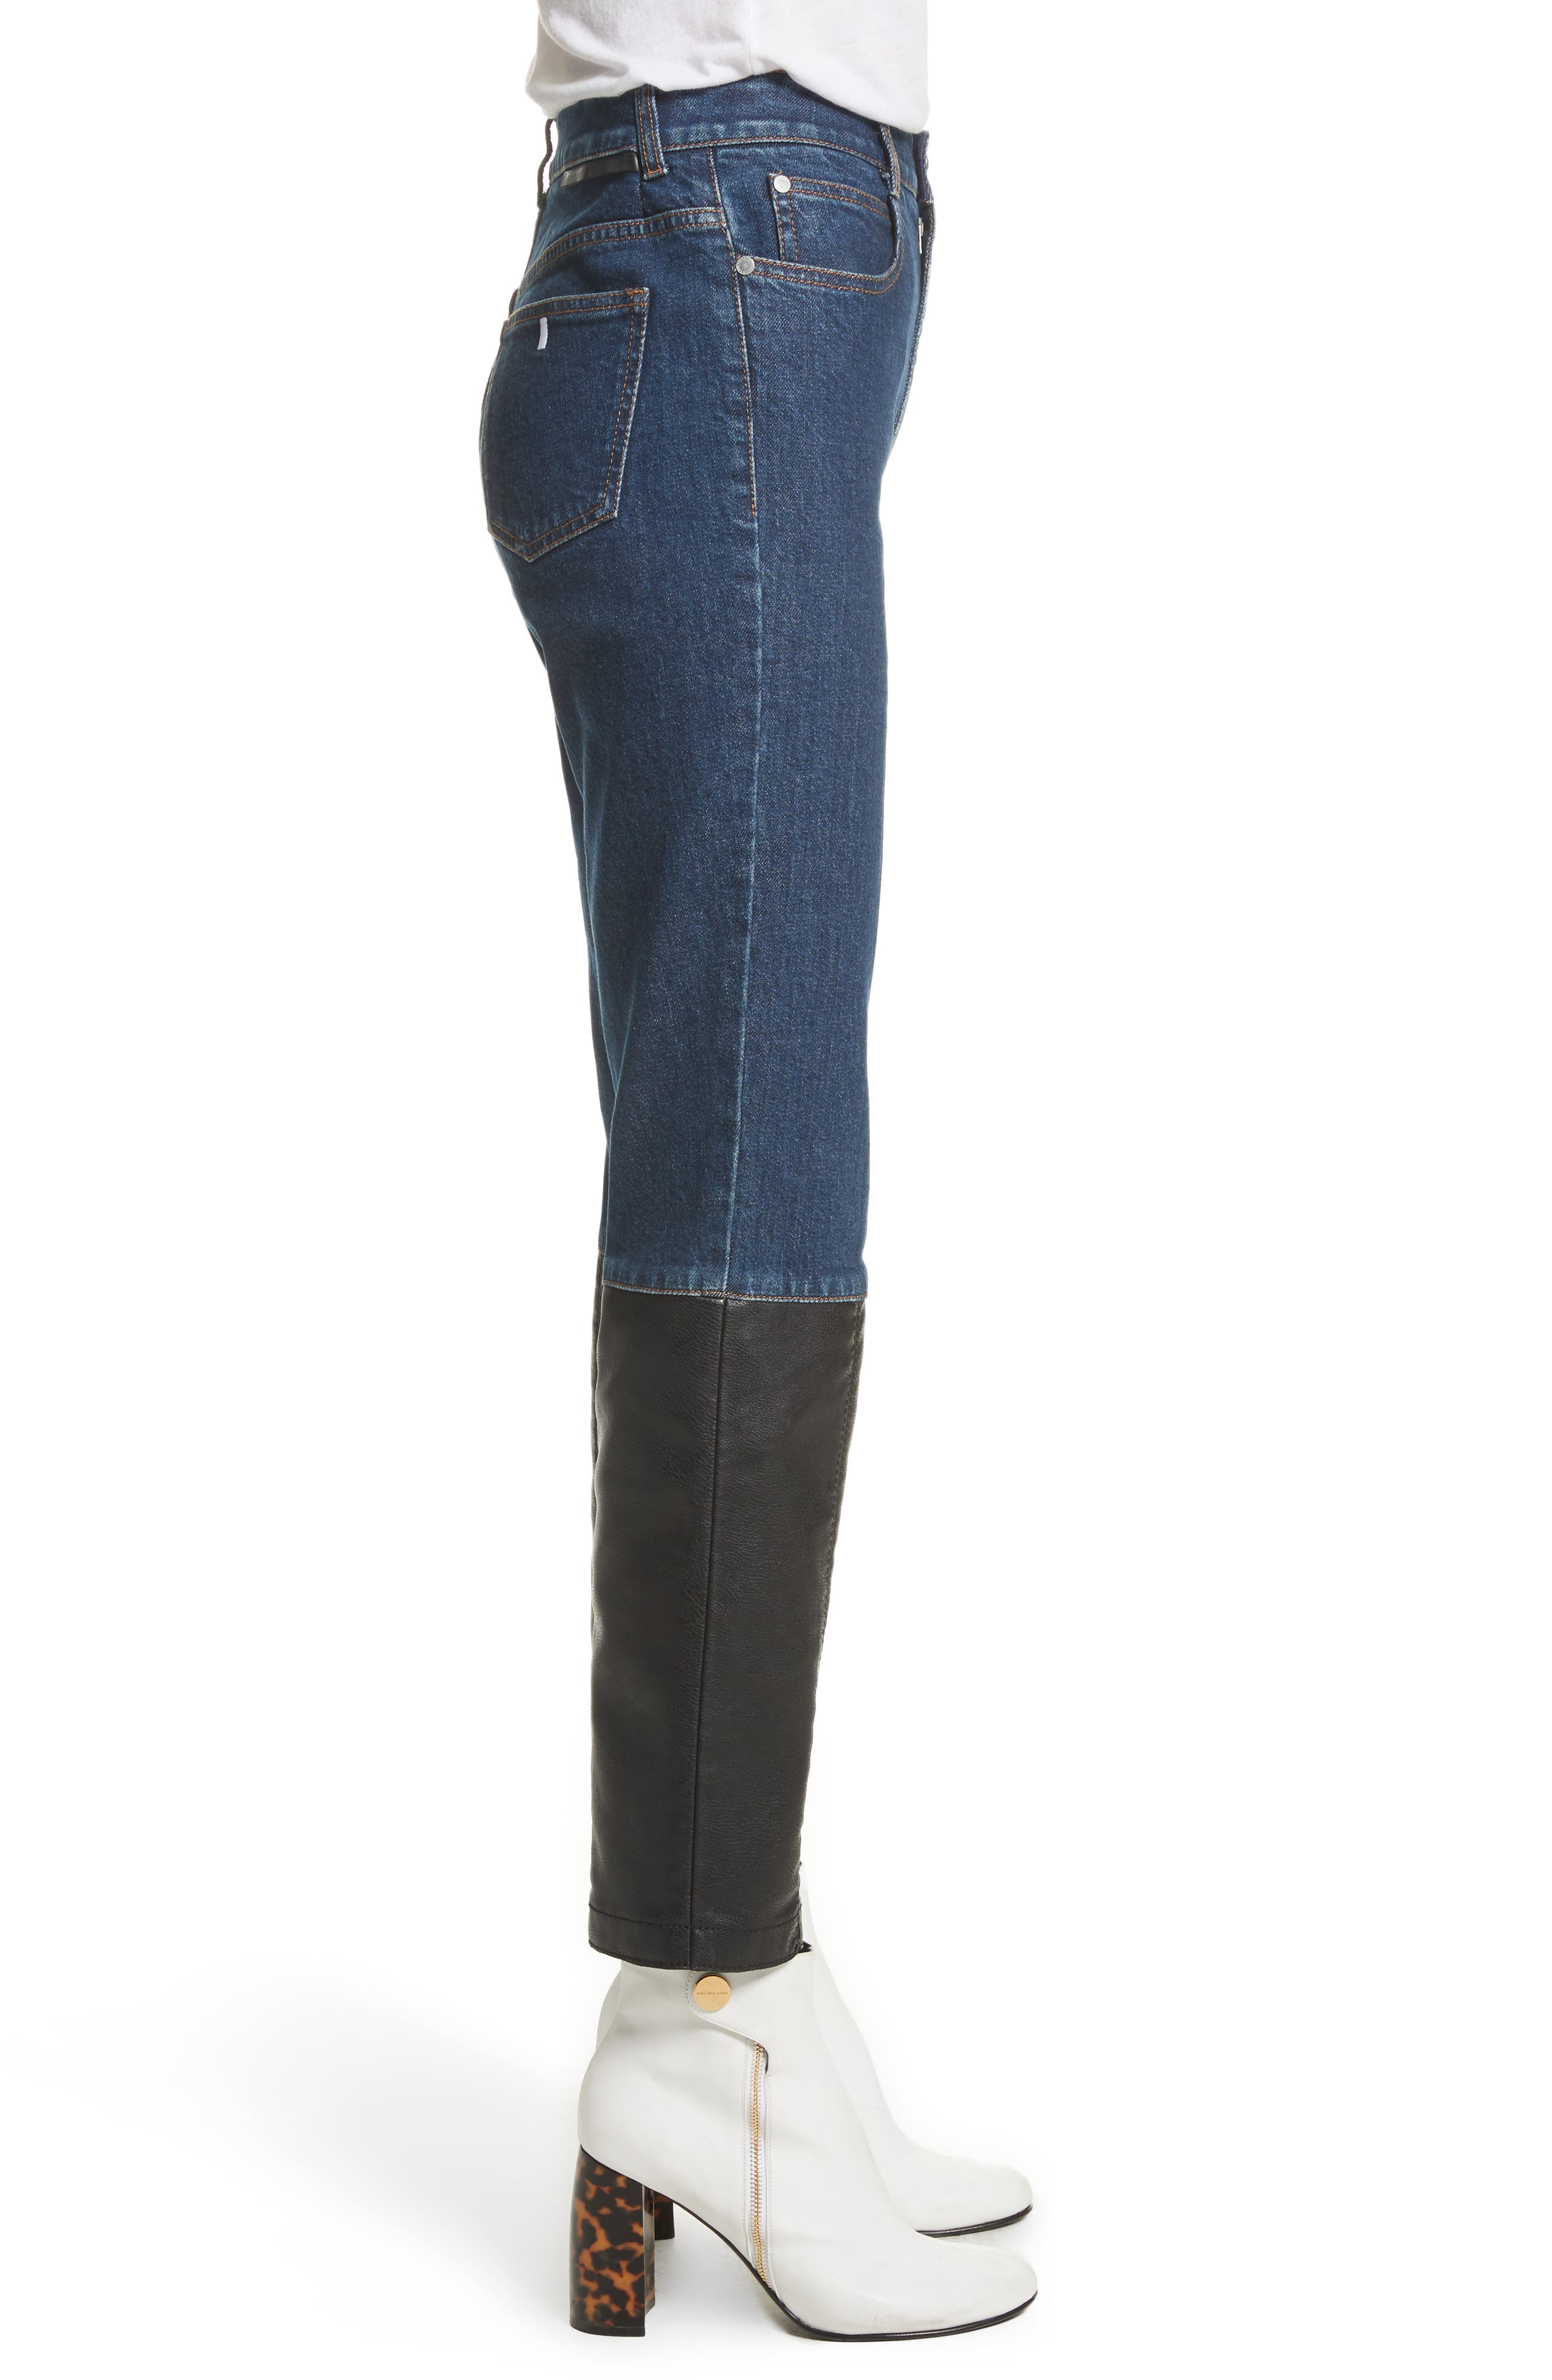 Alter Leather Trim High Waist Straight Leg Jeans,                             Alternate thumbnail 3, color,                             400